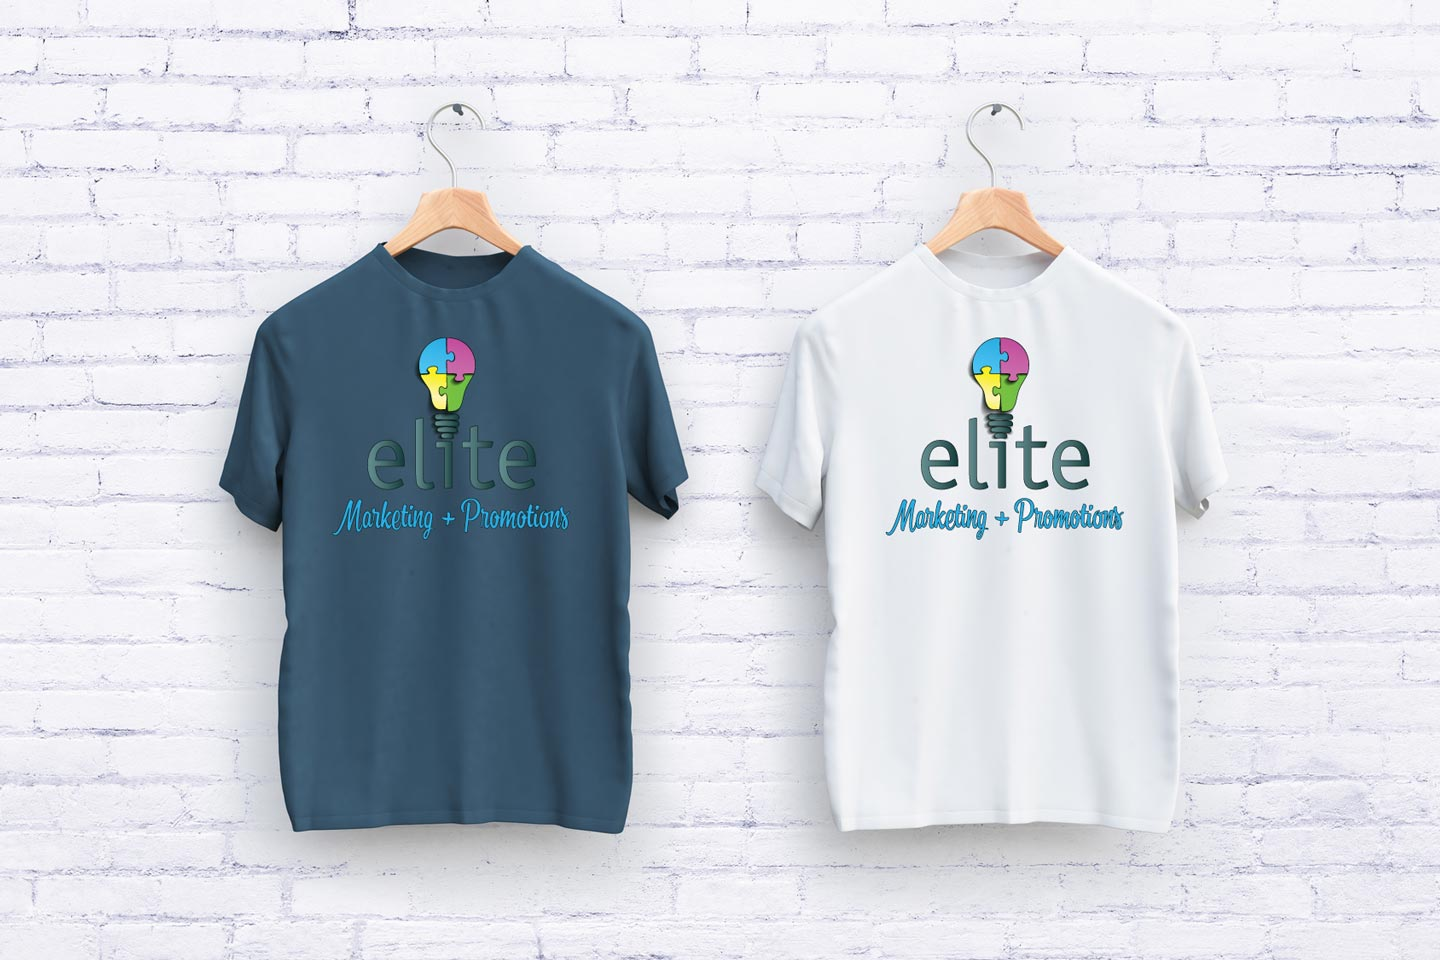 Elite Marketing + Promotions Branded Apparel